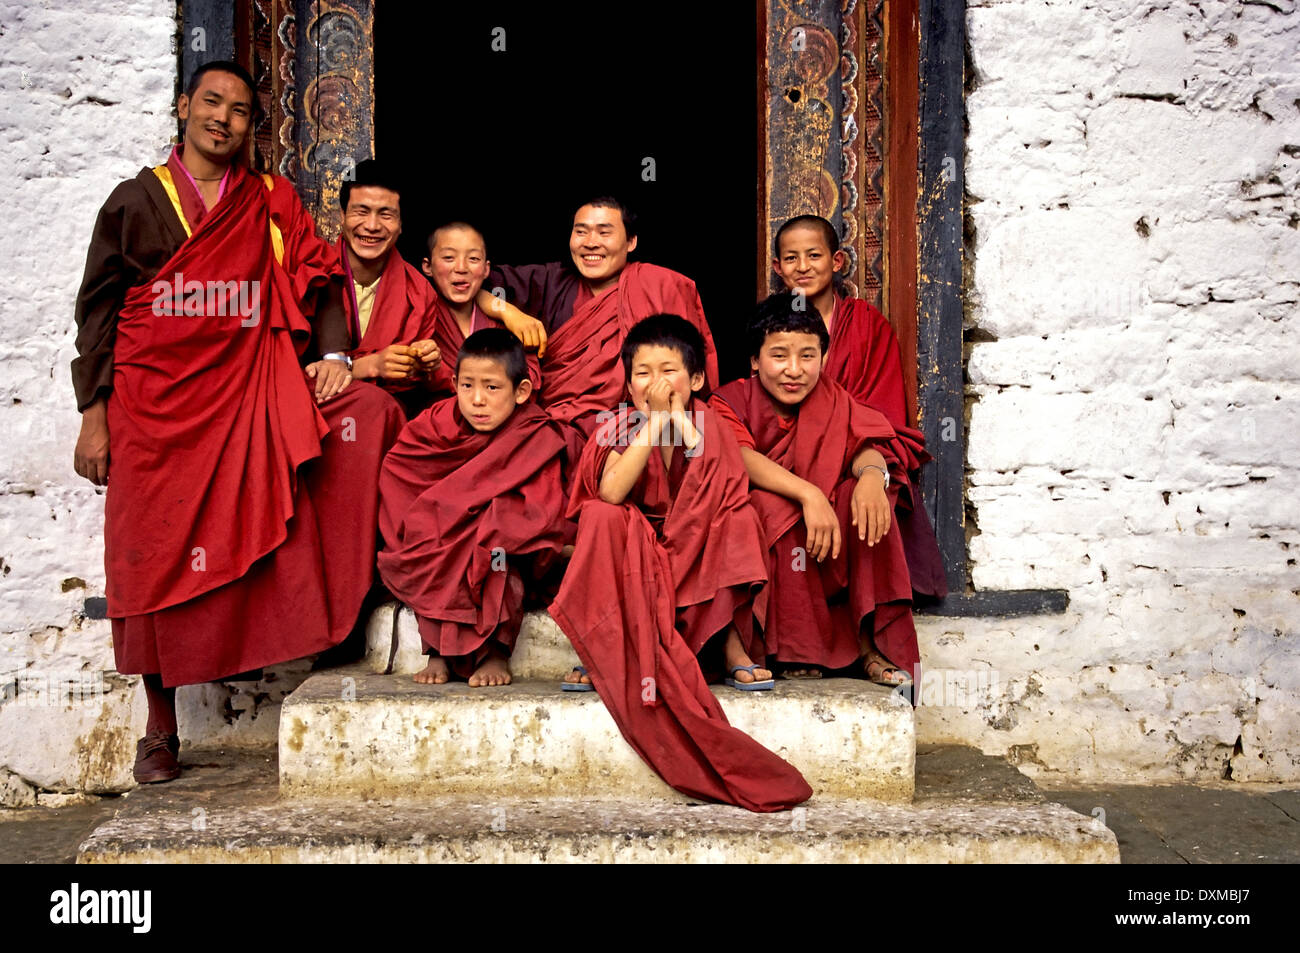 A group of monks at Thimpu Dzong, Bhutan. Digitally Manipulated Image. Stylised by sharpening and enhancing color. - Stock Image